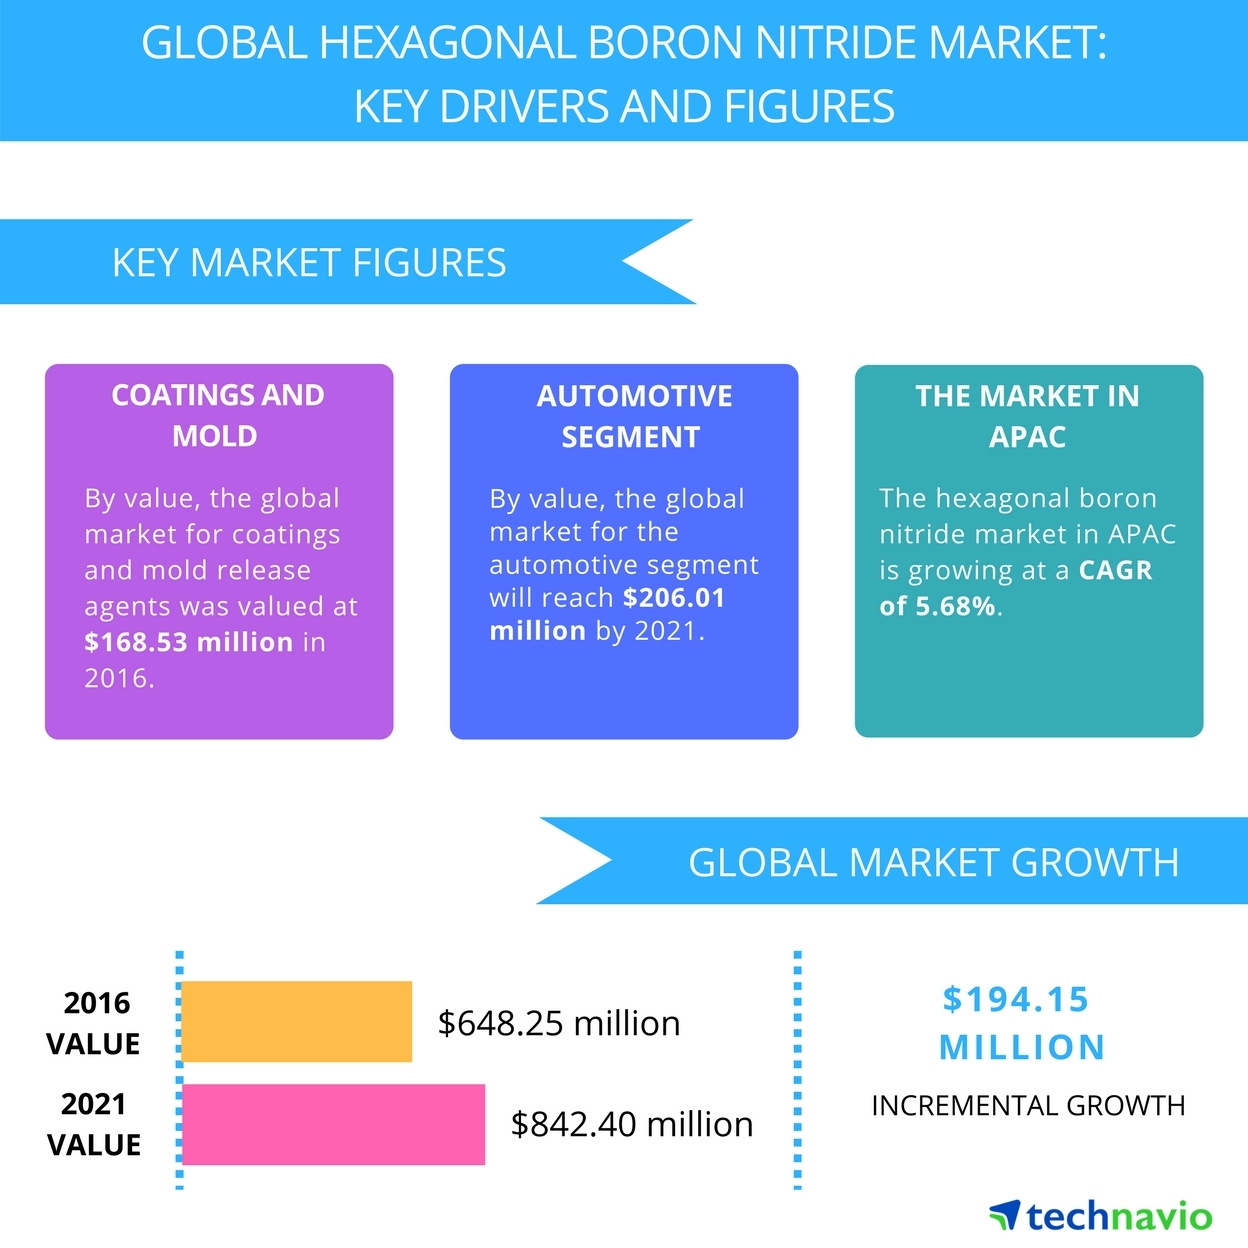 Top 5 Vendors in the Hexagonal Boron Nitride Market from 2017 to